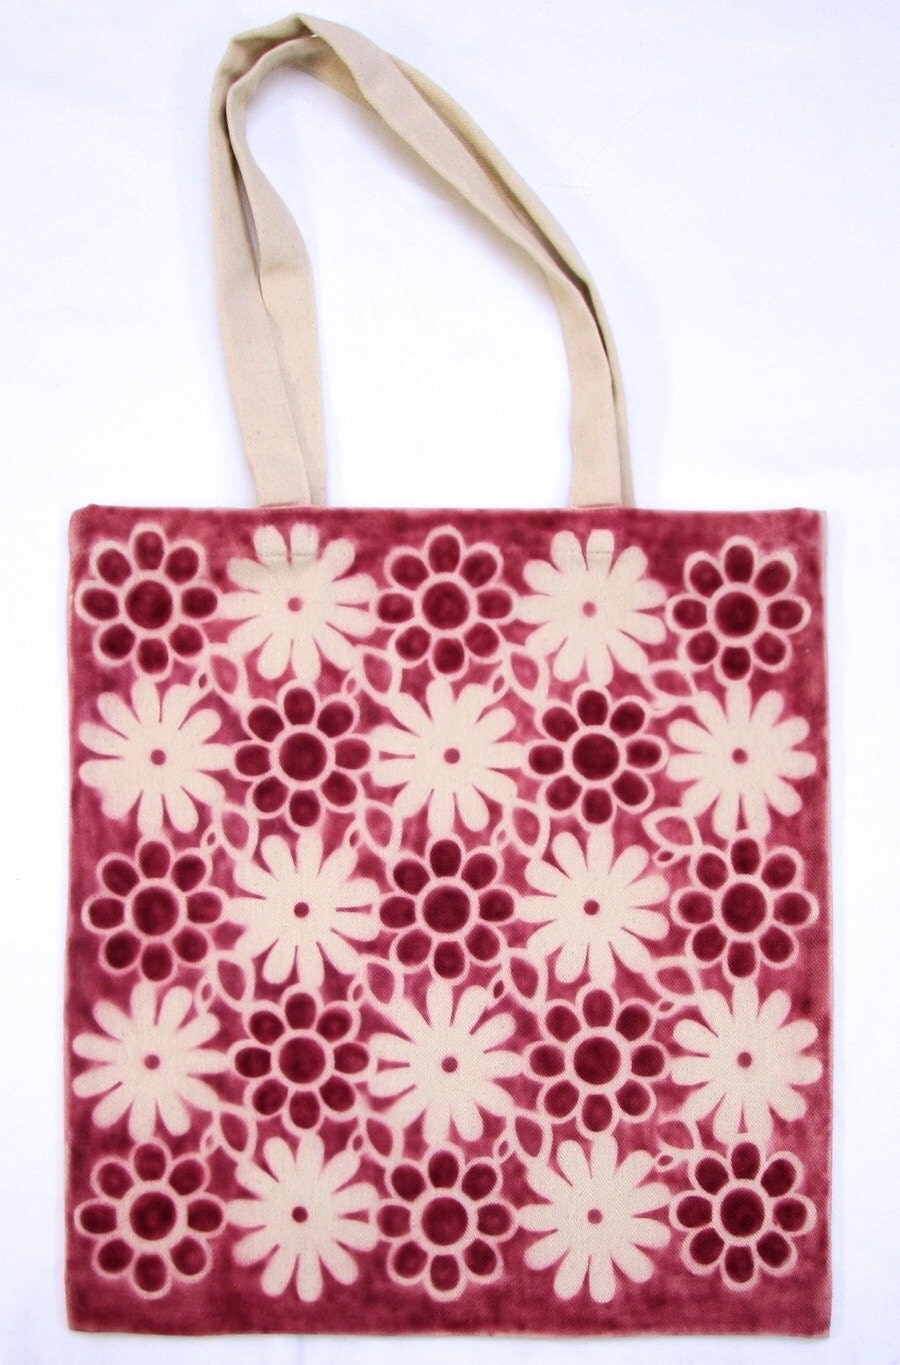 Cotton bag hand made with flowers pattern in crimson, dar red color. Natural raw cotton, market bag. - DorSilk